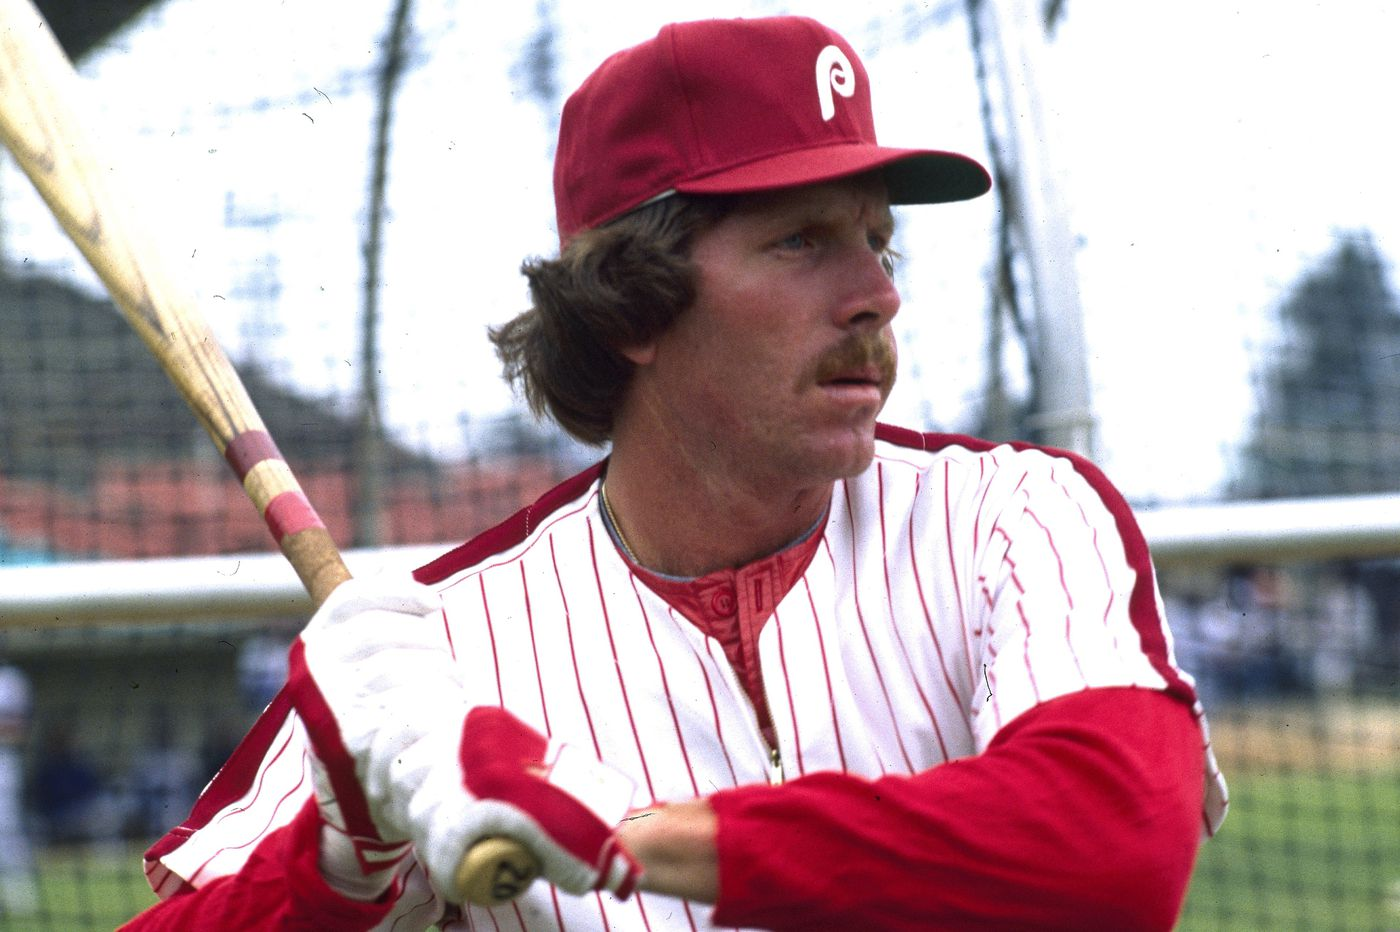 Phillies legend Mike Schmidt says Bryce Harper is 'everything' Philly wants